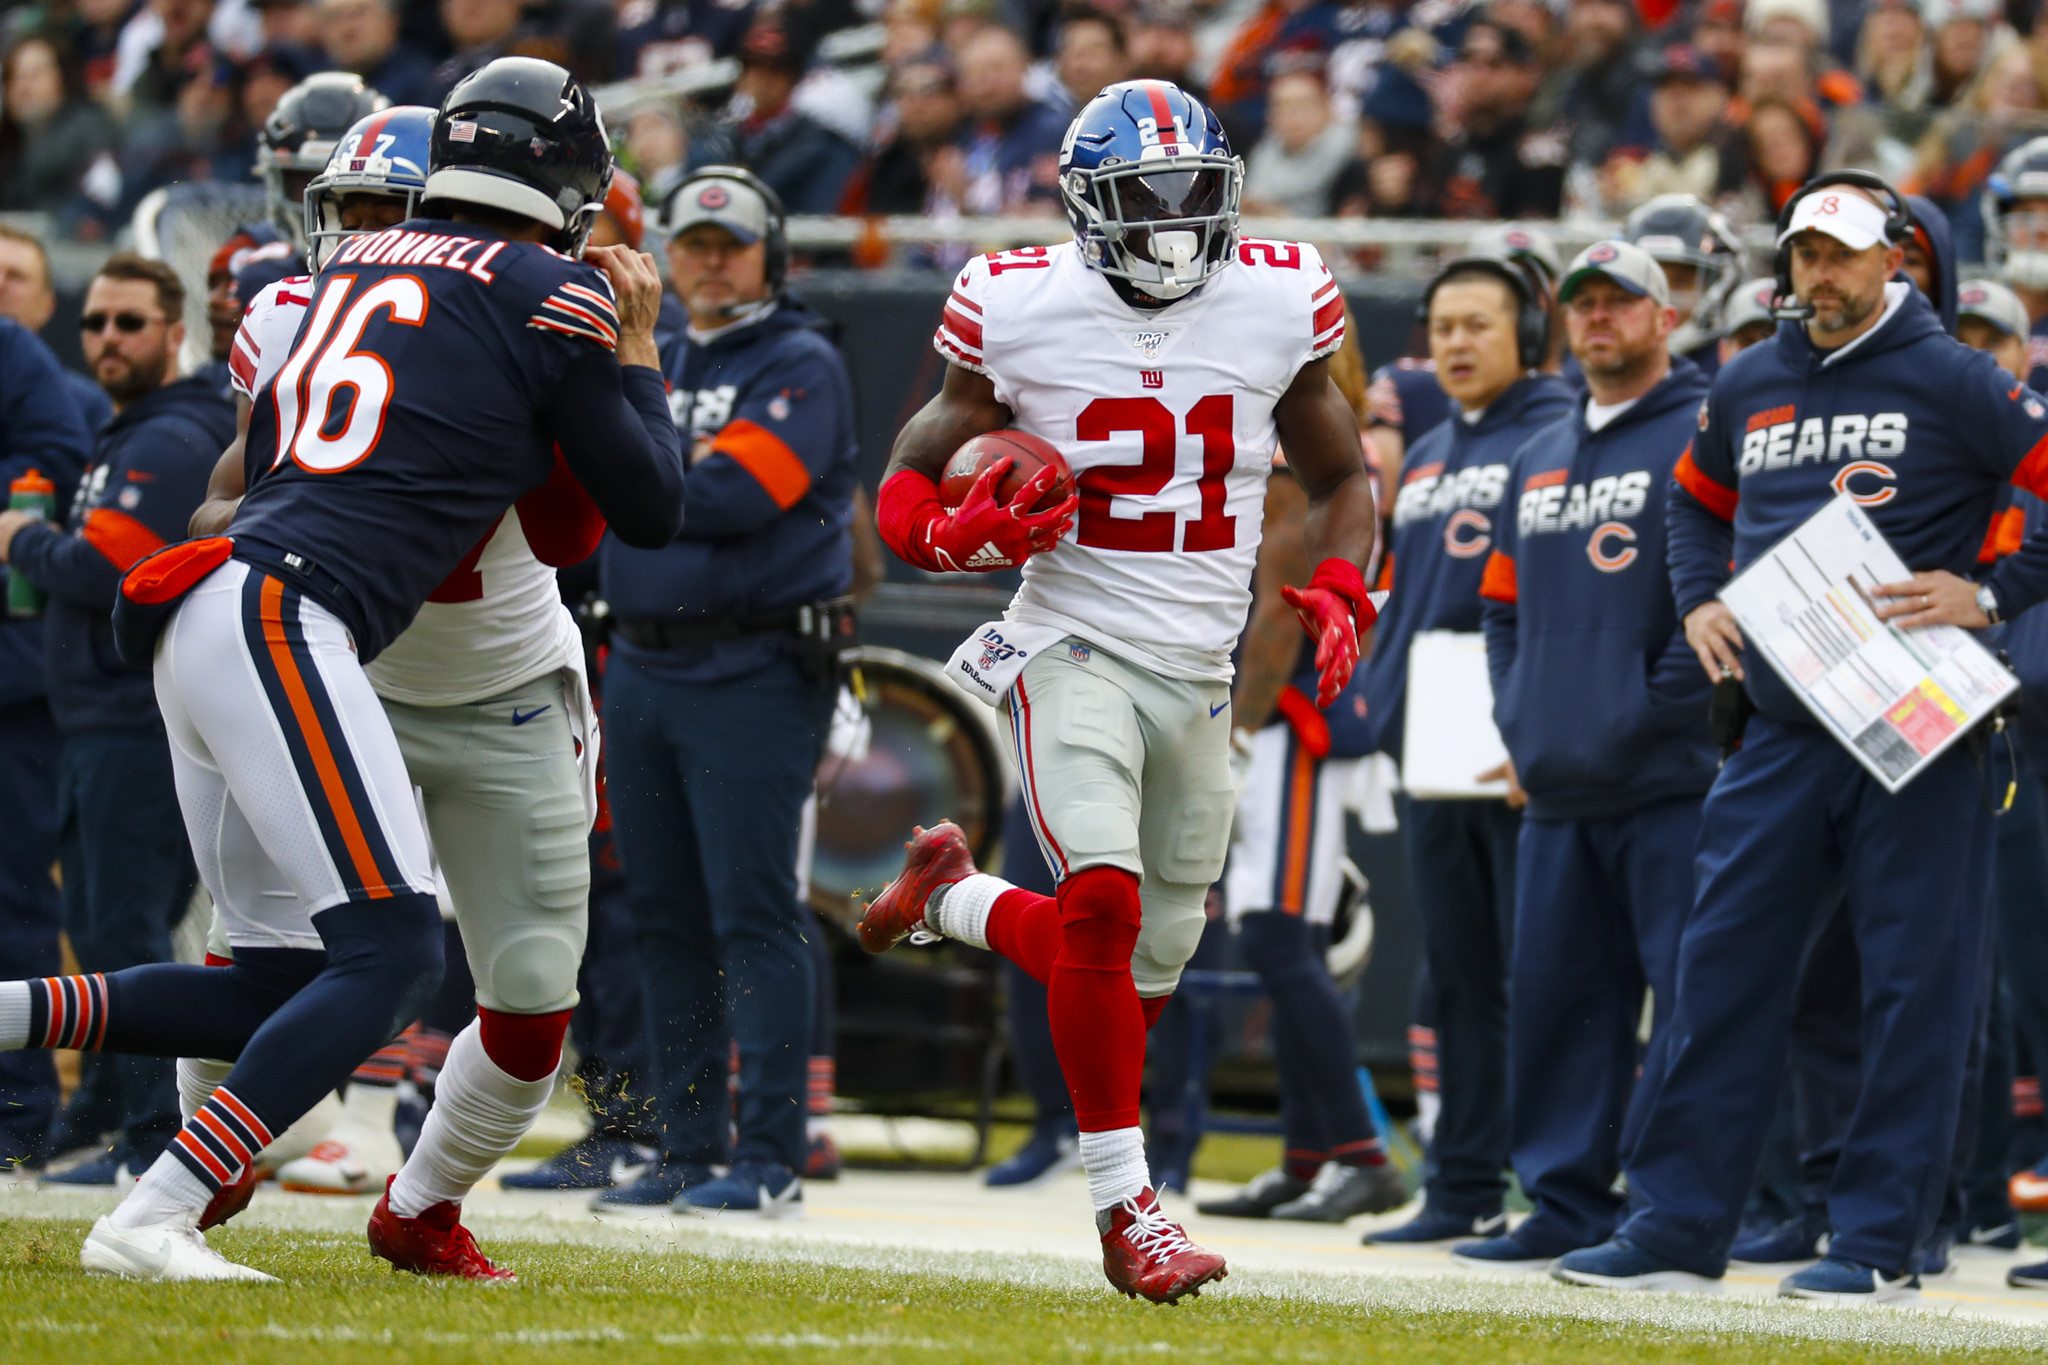 Giants mailbag: Expanded postseason, plus where will Slay, Peppers, Clowney end up?